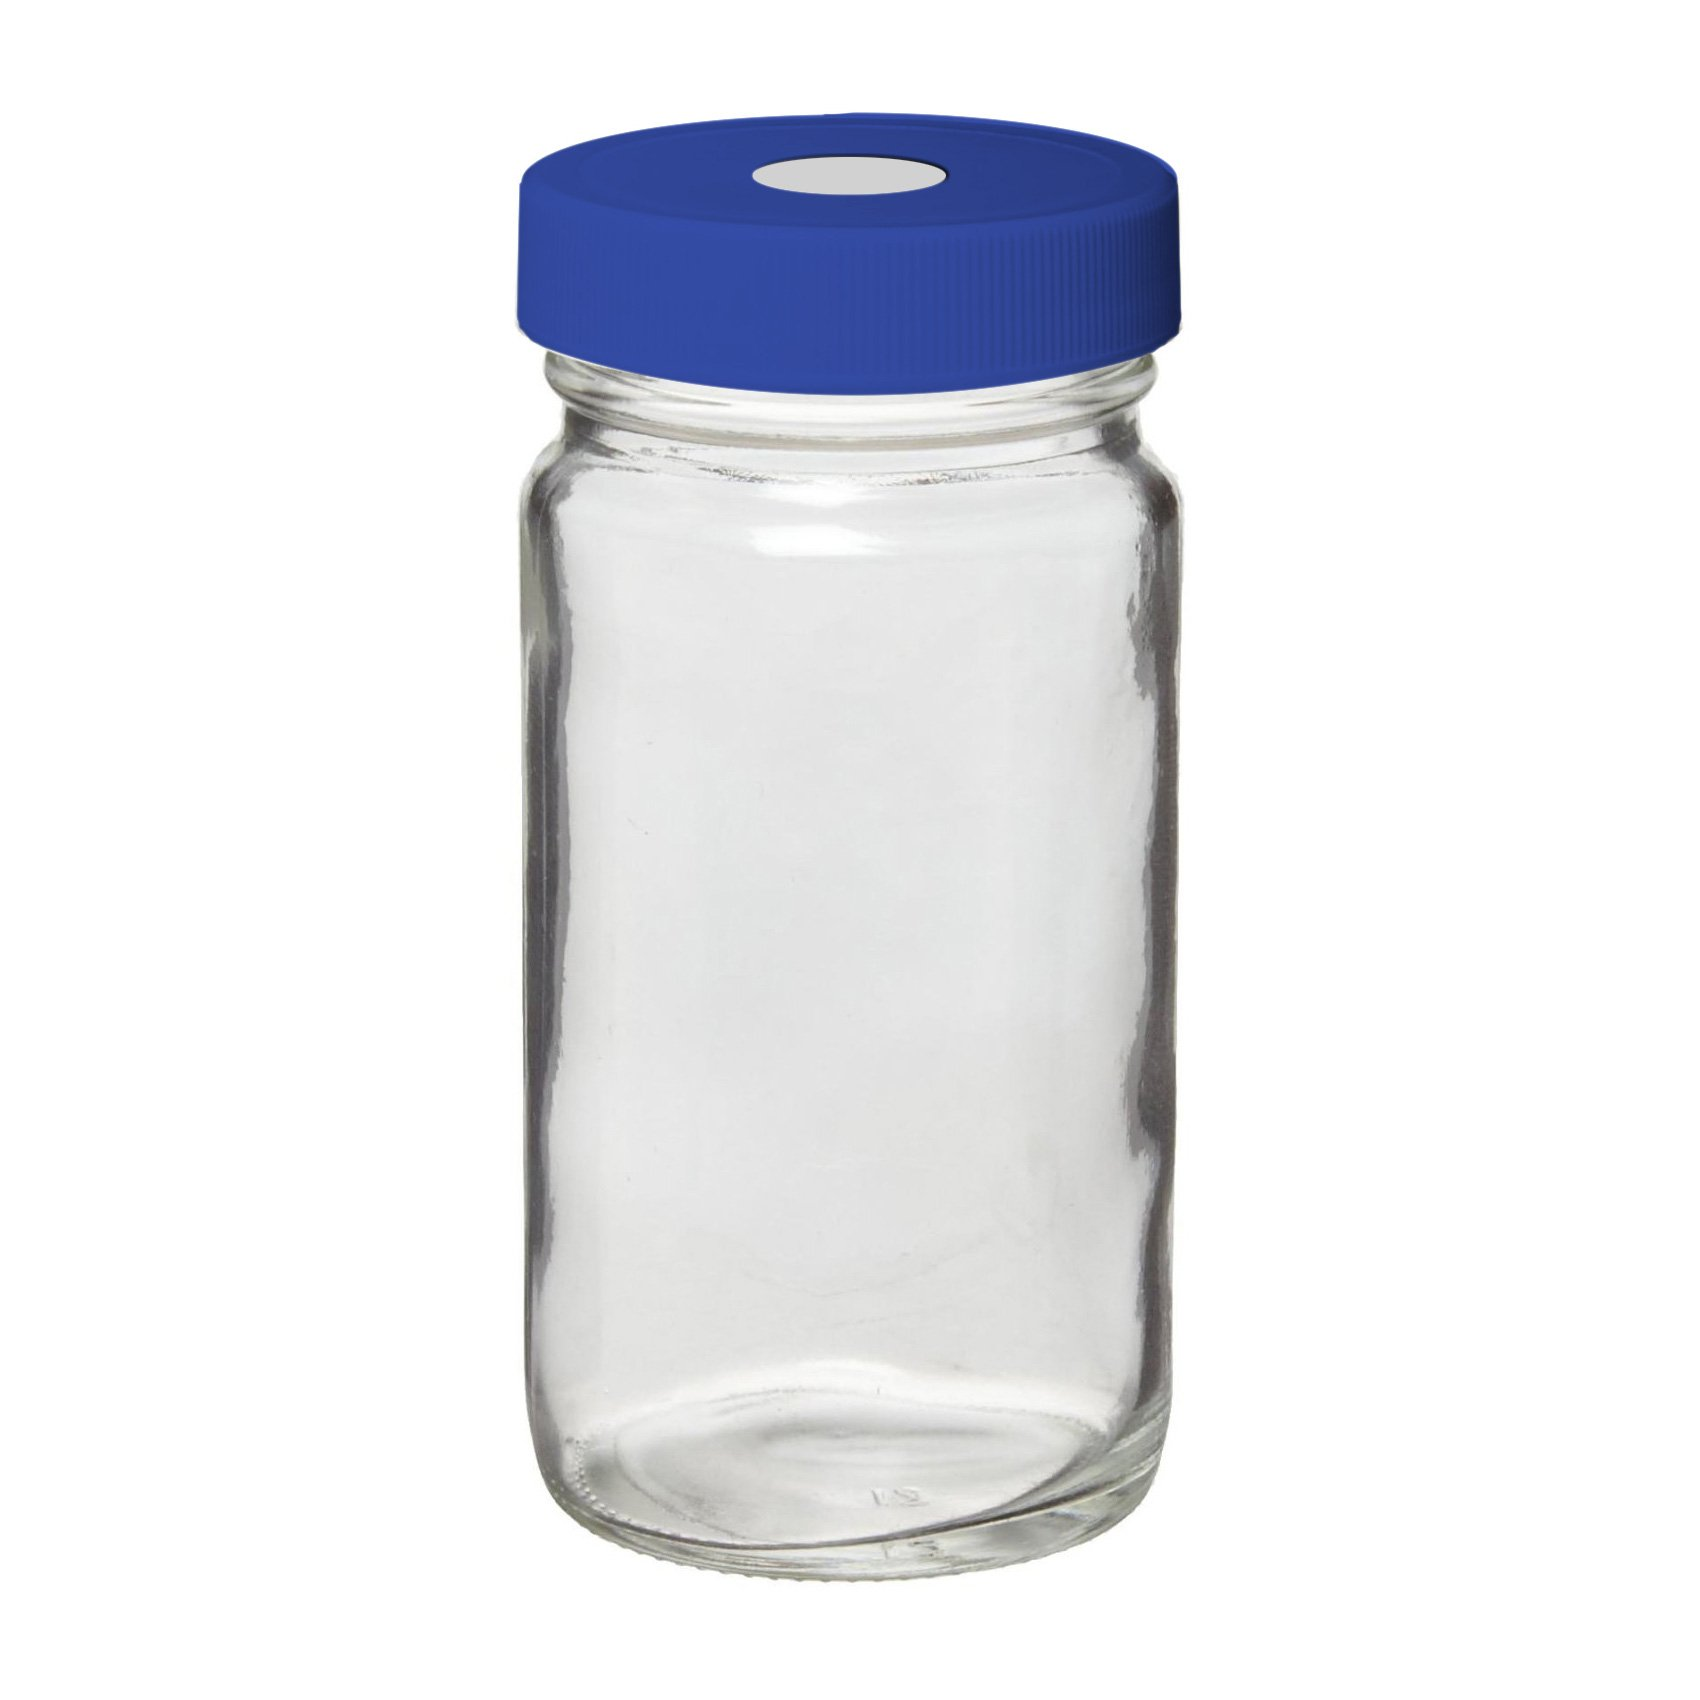 I-Chem Brand S129-0250 100 Series Type III Glass Clear Narrow Mouth Septa Bottle, With Blue Polypropylene Cap, Capacity: 250mL (Case of 12)